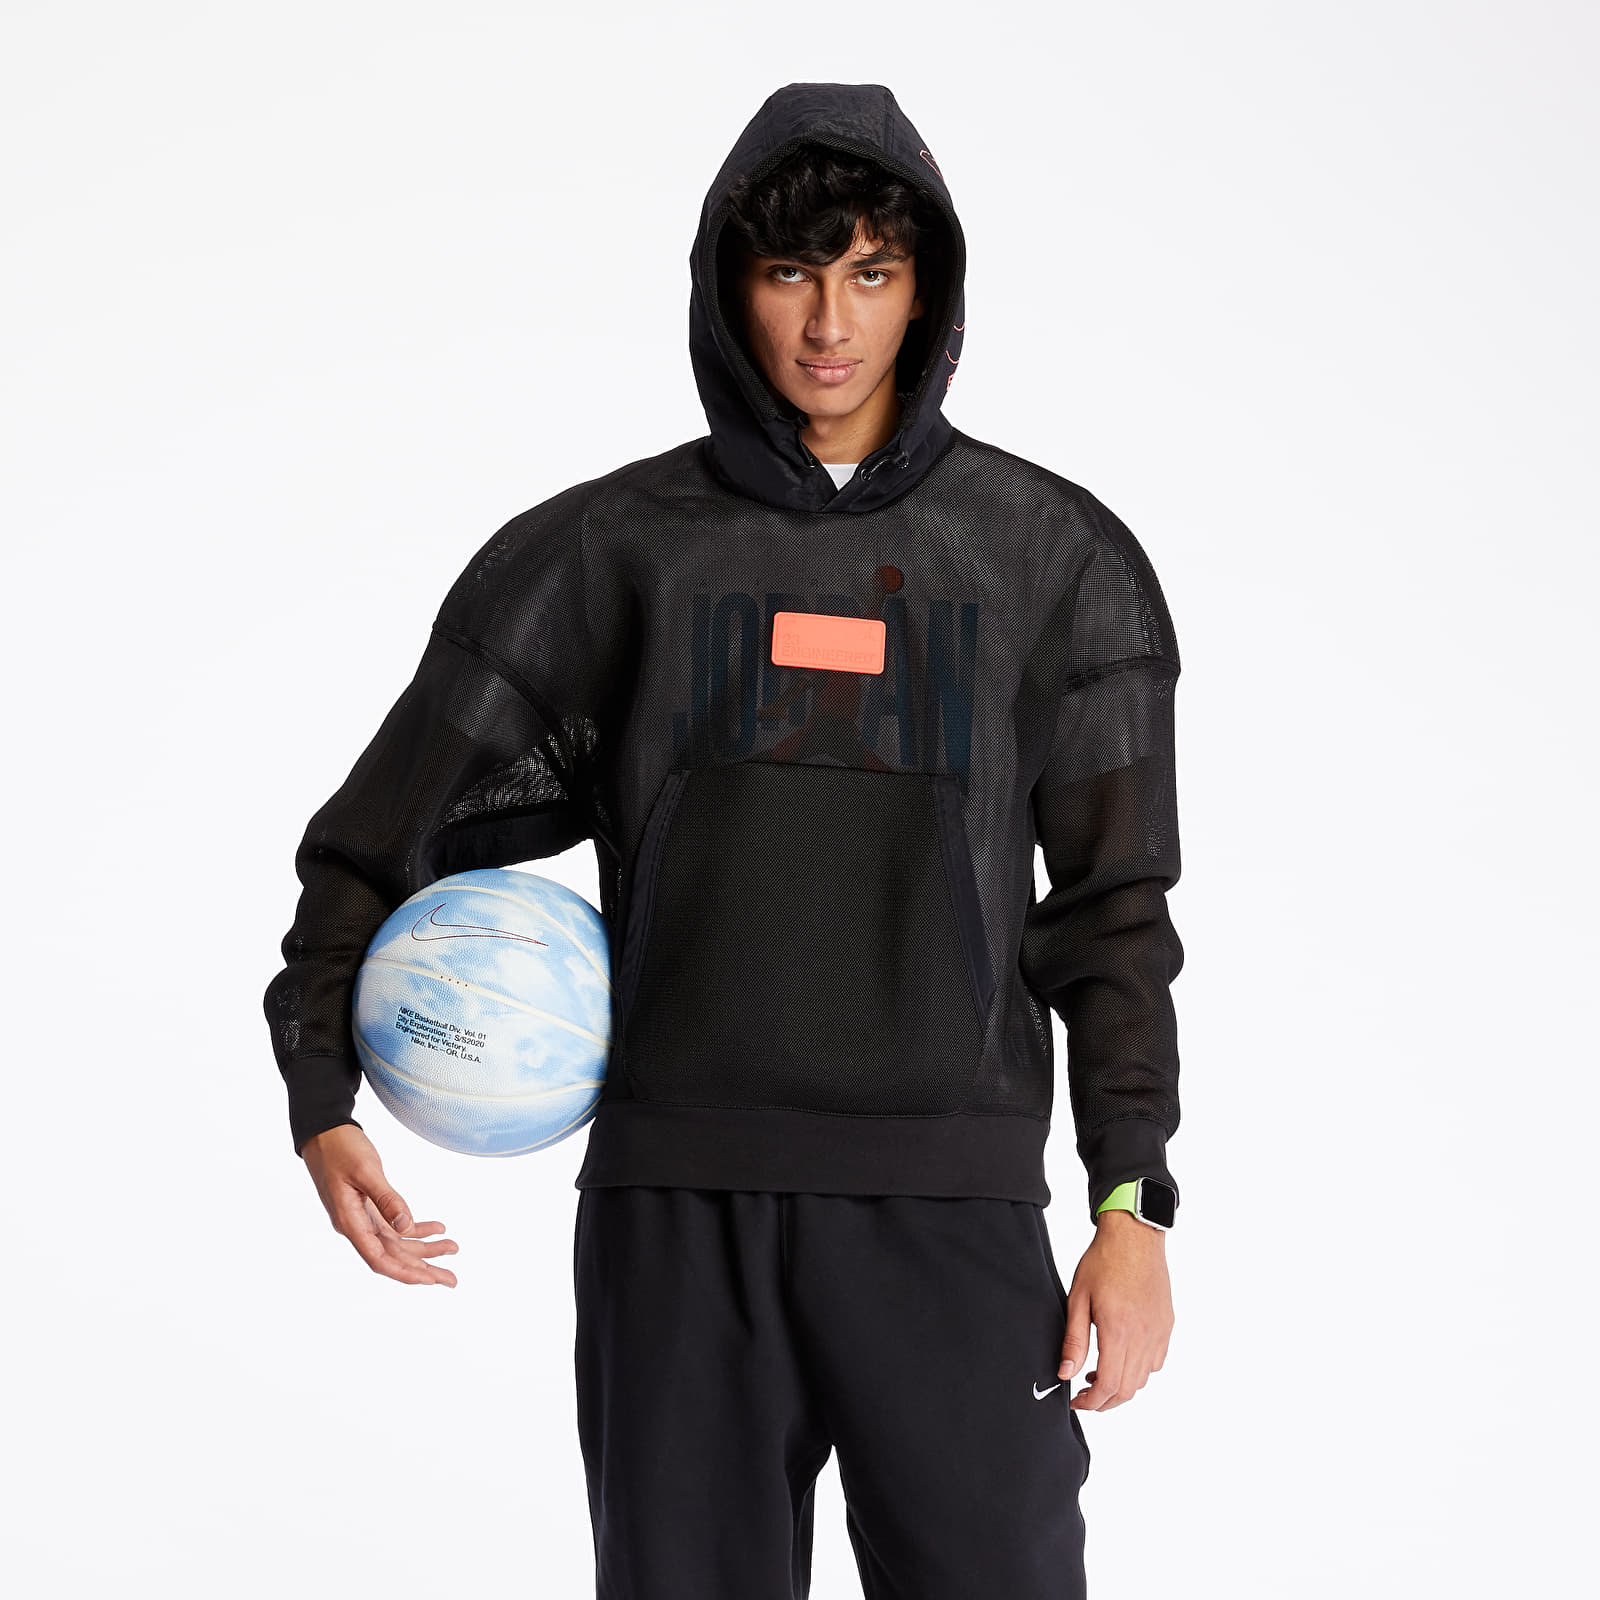 Sweatshirts Jordan 23 Engineered Spacer Mesh Hoodie Black/ Infrared 23